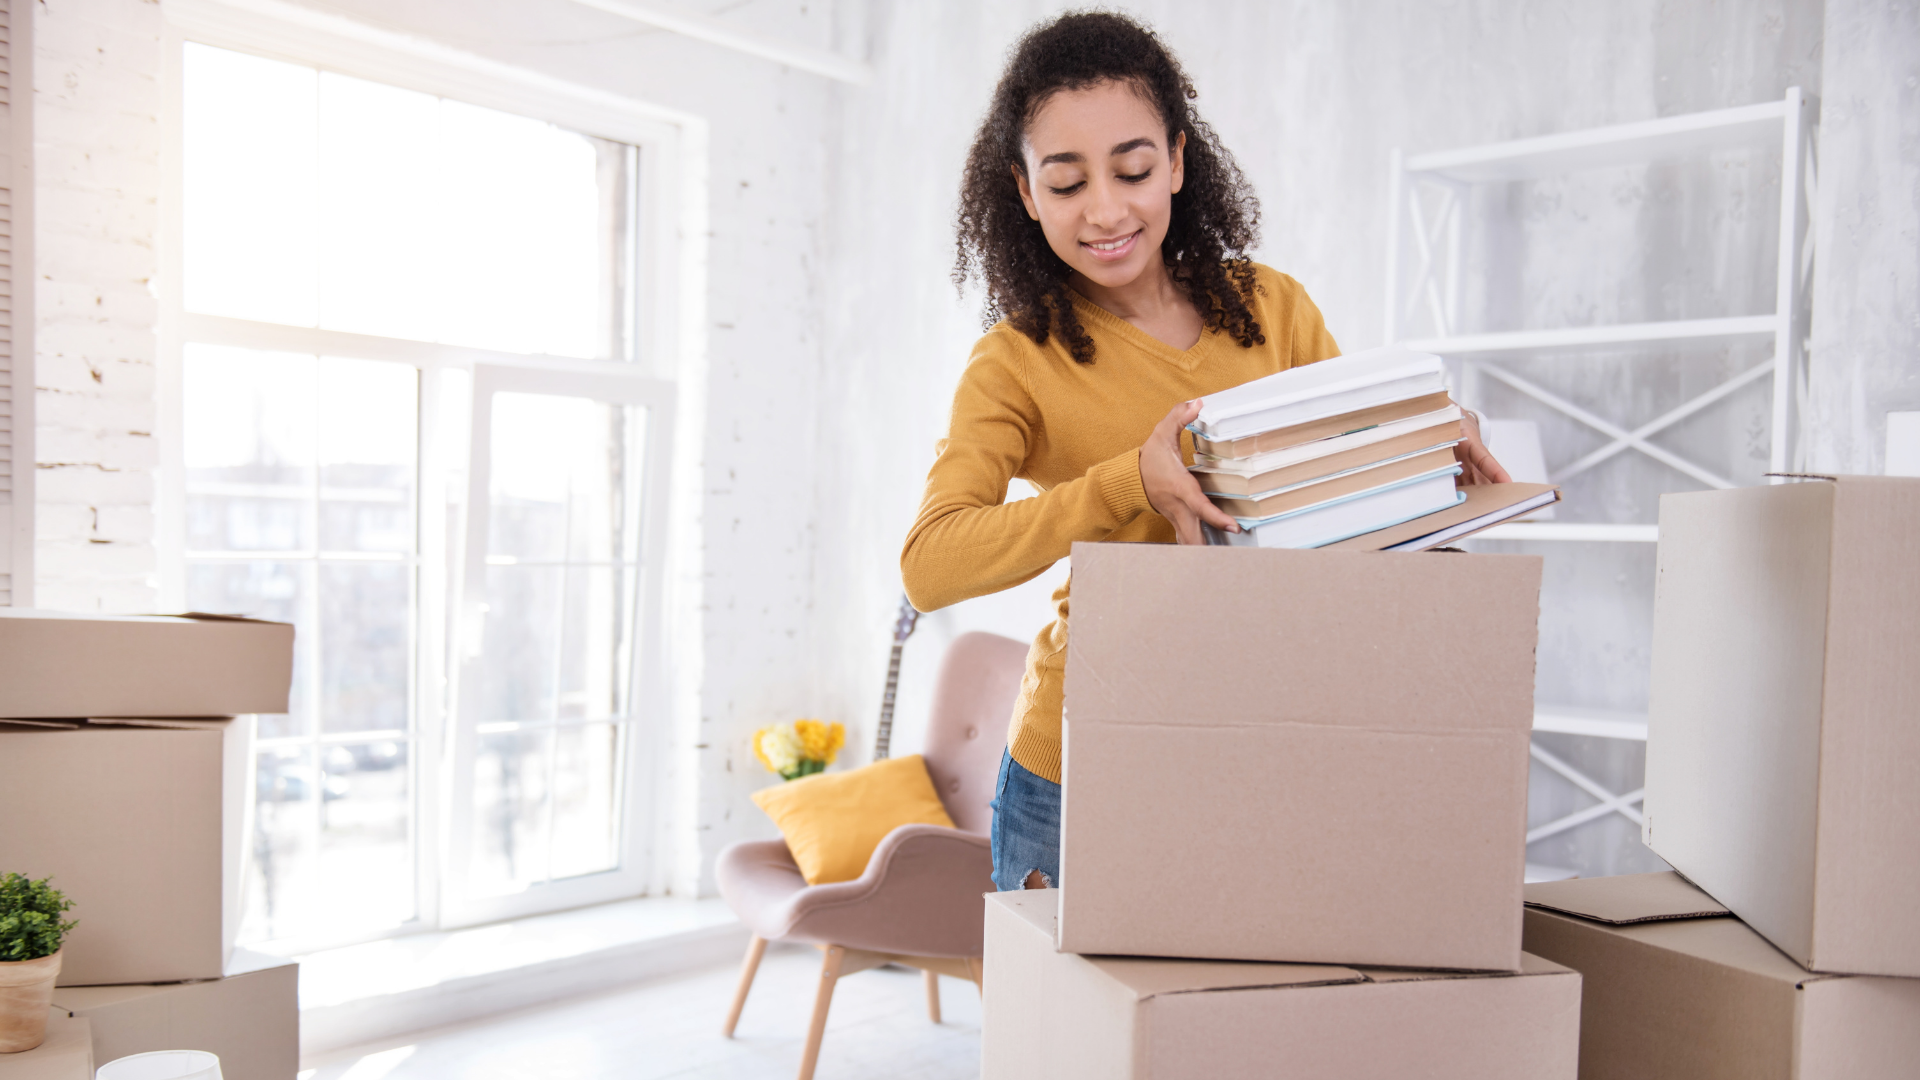 MOVING OUT? DON'T FORGET TO CHANGE YOUR ADDRESS